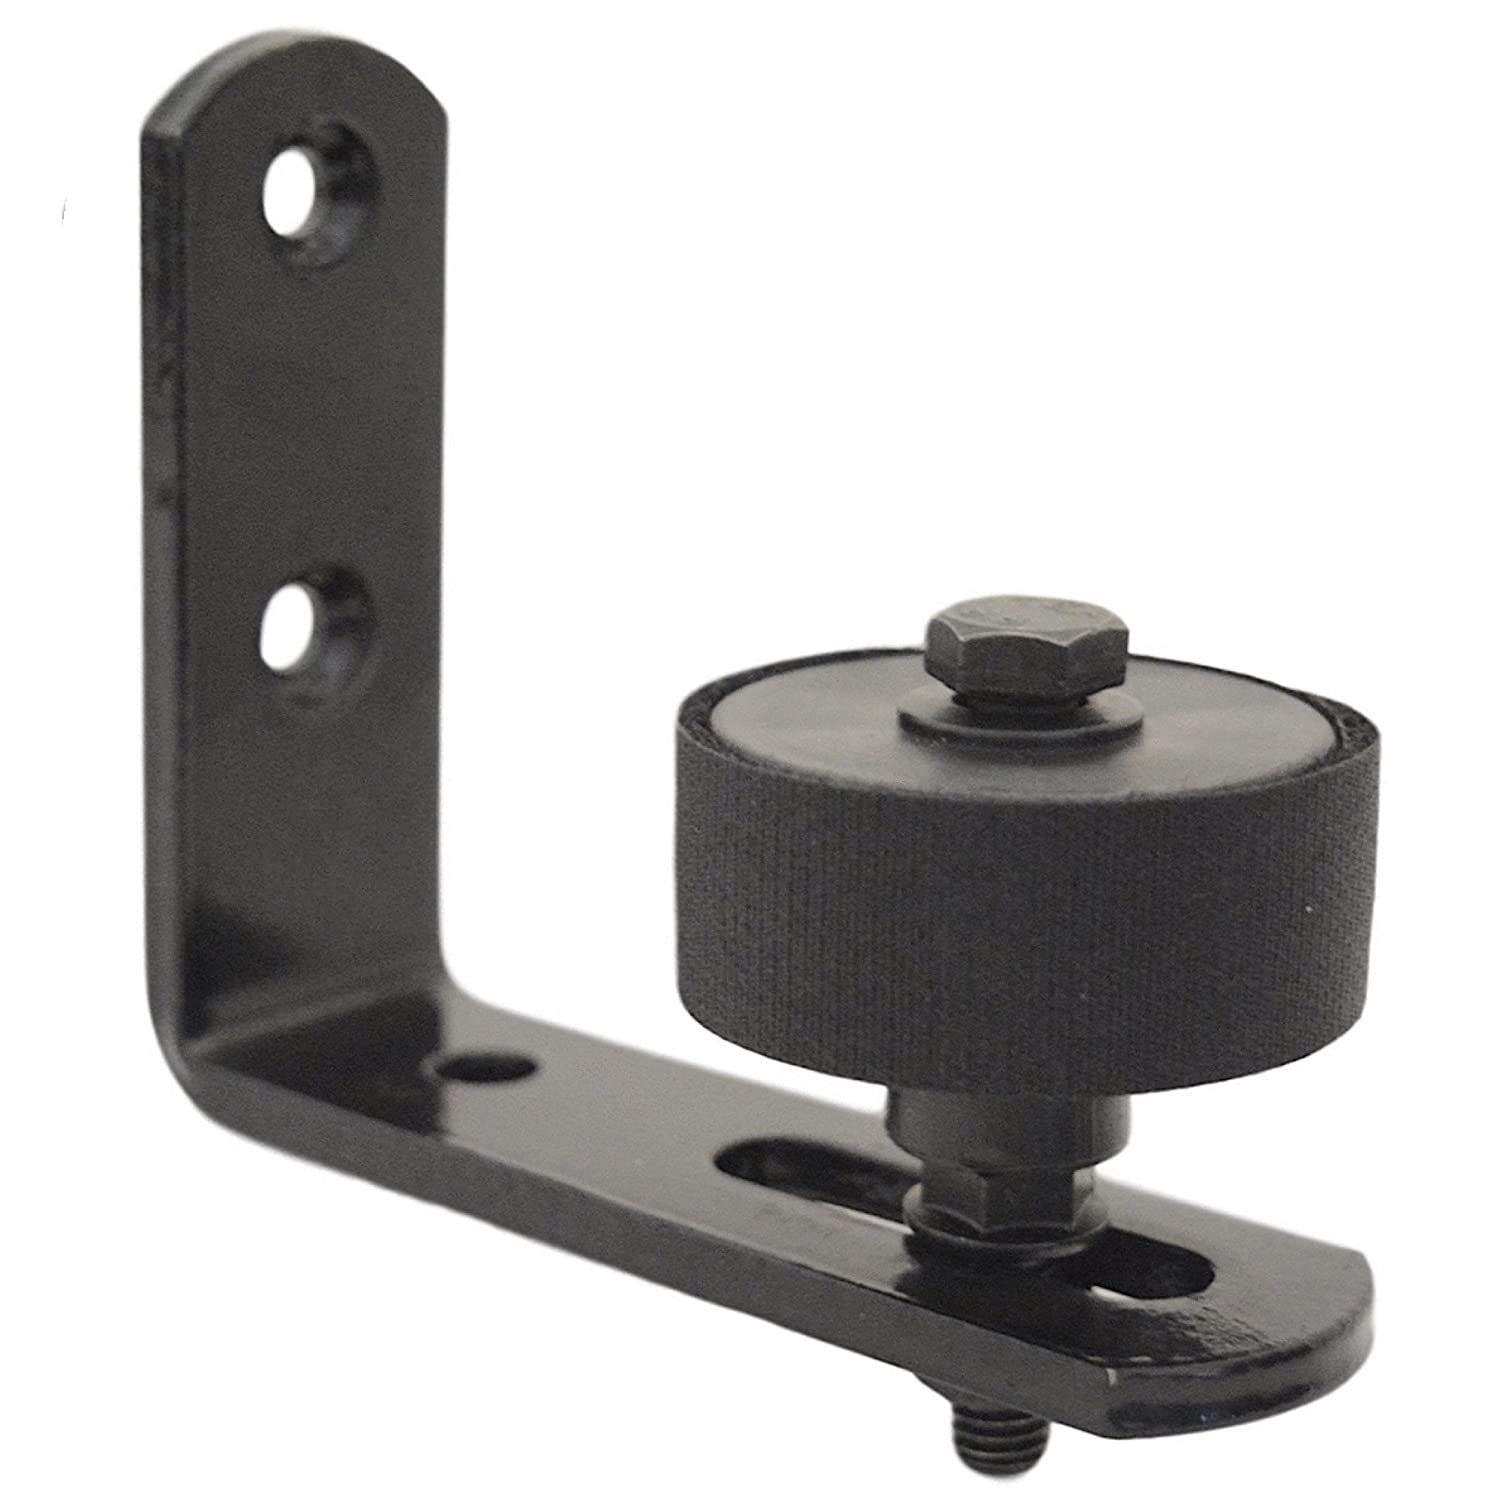 Adjustable Barn Door Stay Roller Floor Guide - Black Powder Coated Steel Bracket Channel Wall Mount - Universal Fit Sliding Barn Door Bottom Guide Quiet Not Abrasive Padded Roller Guide Protection Tinfin Hardware Ltd.